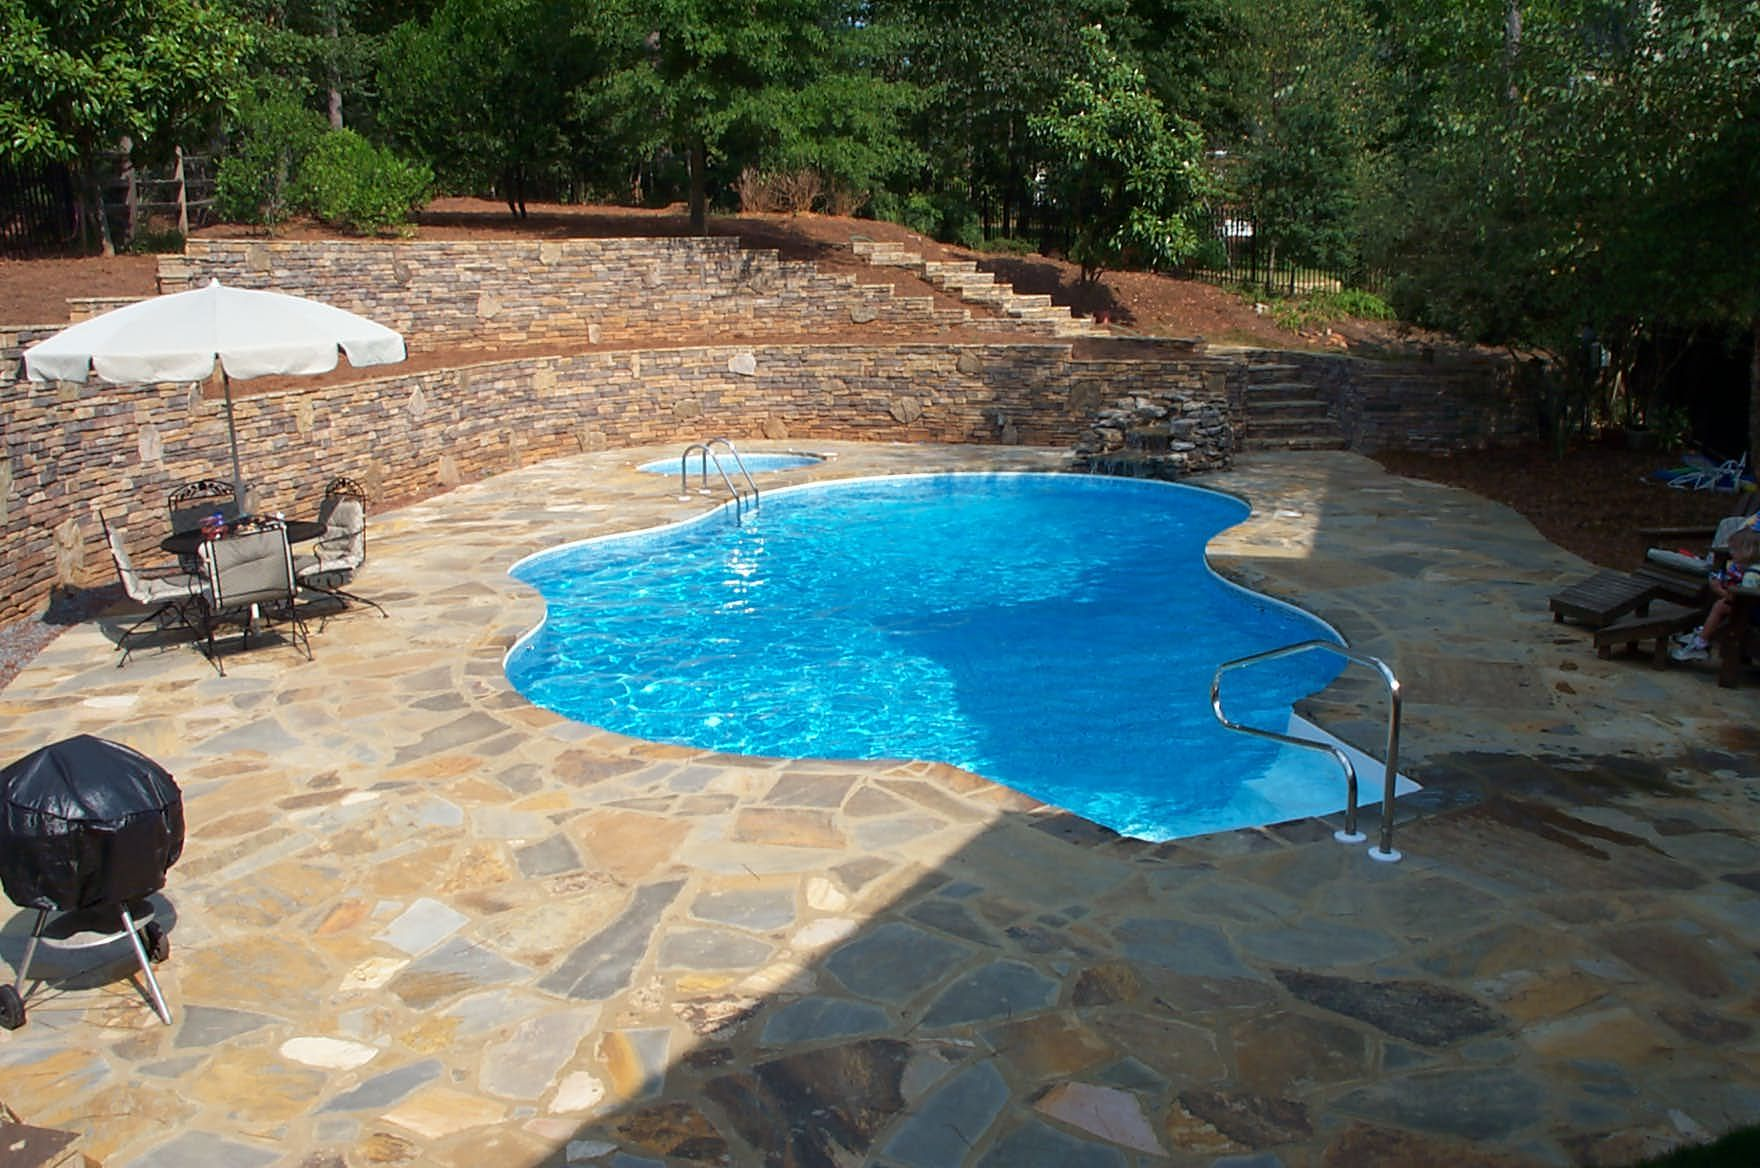 Brown S Pools Spas Gunite Pool Www Brownspools Com 770 942 0118 Www Facebook Com Brownspools Backyard Vacation Pool Swimming Pool Renovation